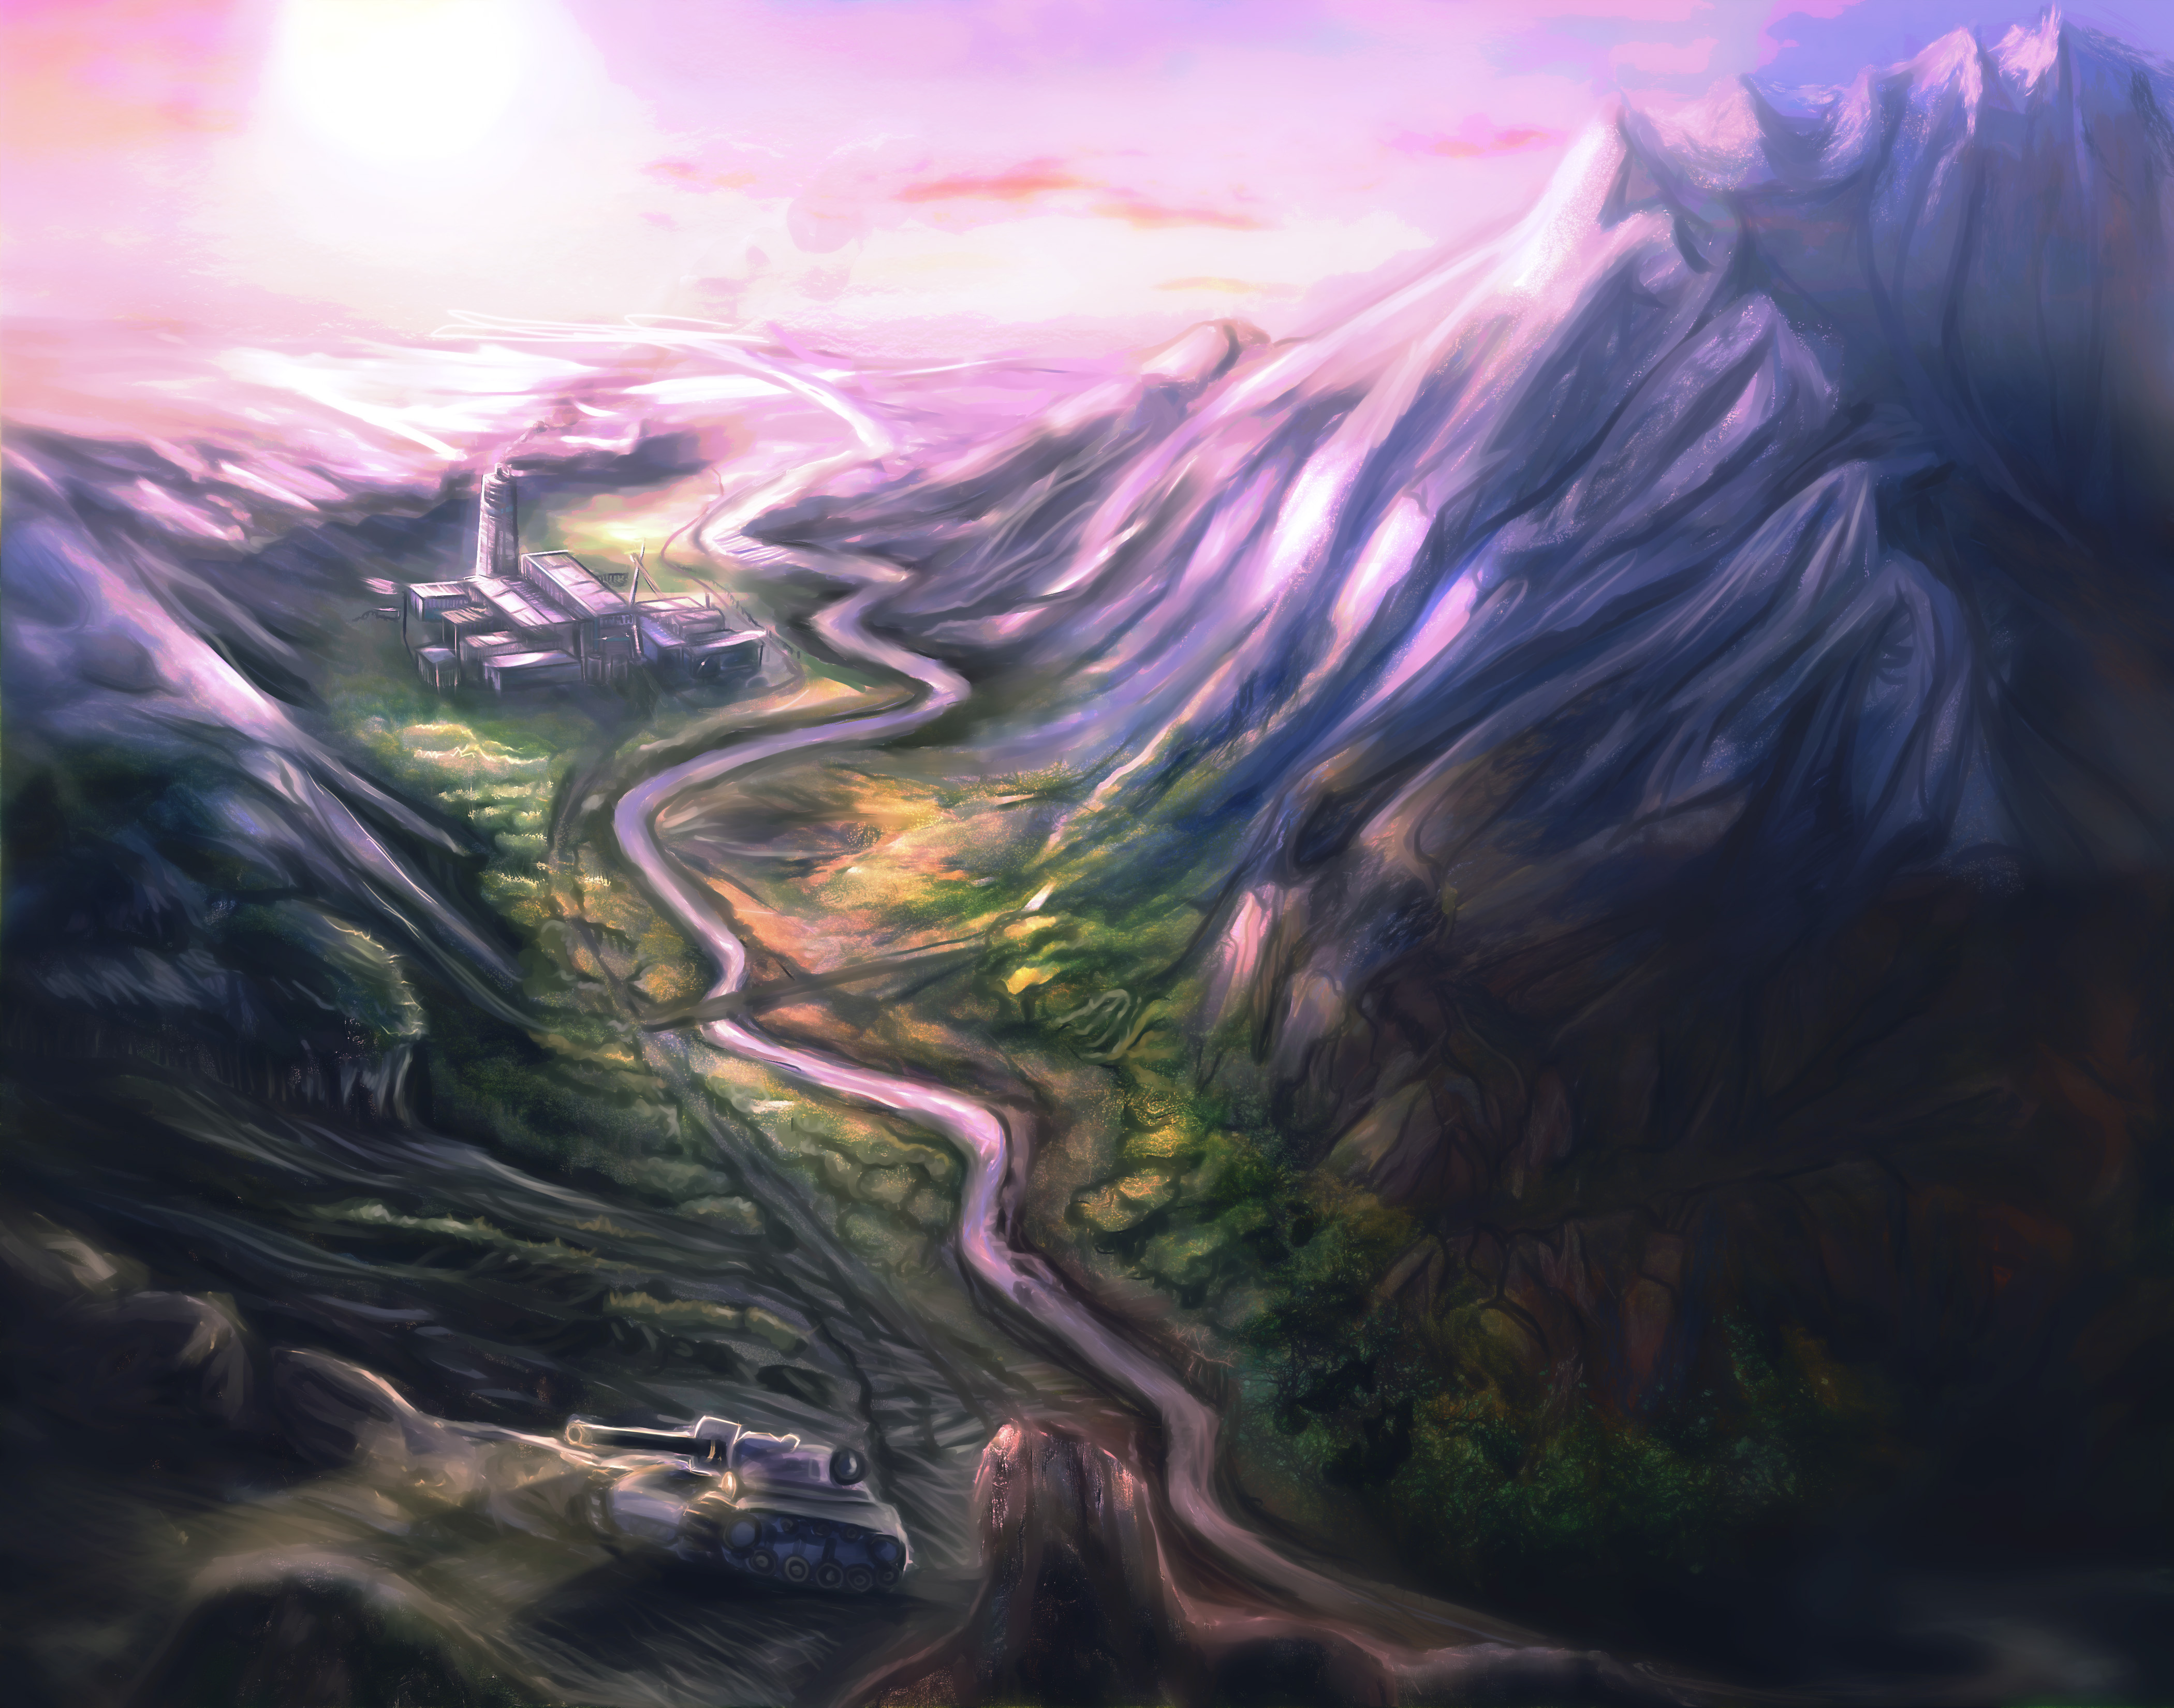 Farlander cover for ArtyRambles Sweden Mountains and Valley with River and Tank digital landscape painting concept art dystopic novel dystopia apocalypse end of the world